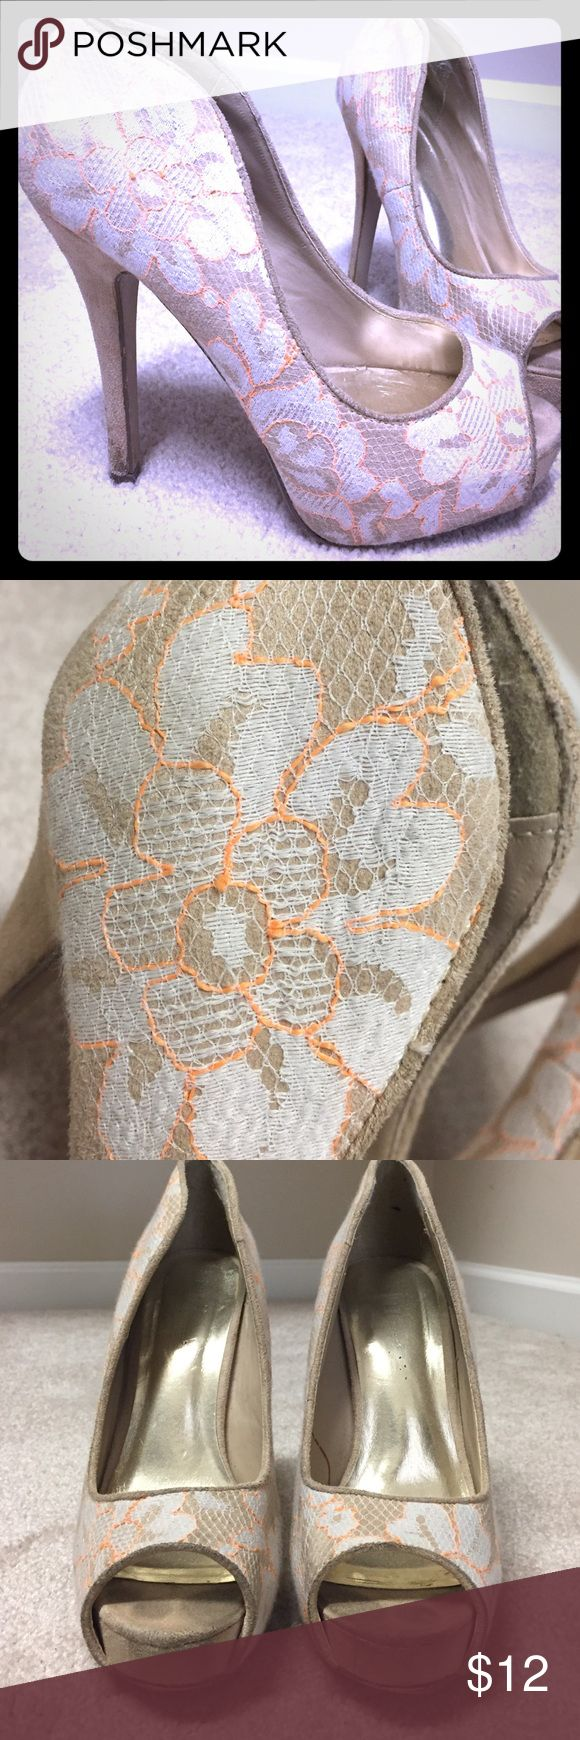 Tan lace high heels Super cute. Lace cream colored plate form high heels. Extremely comfy for being 4inches high Shoes Platforms